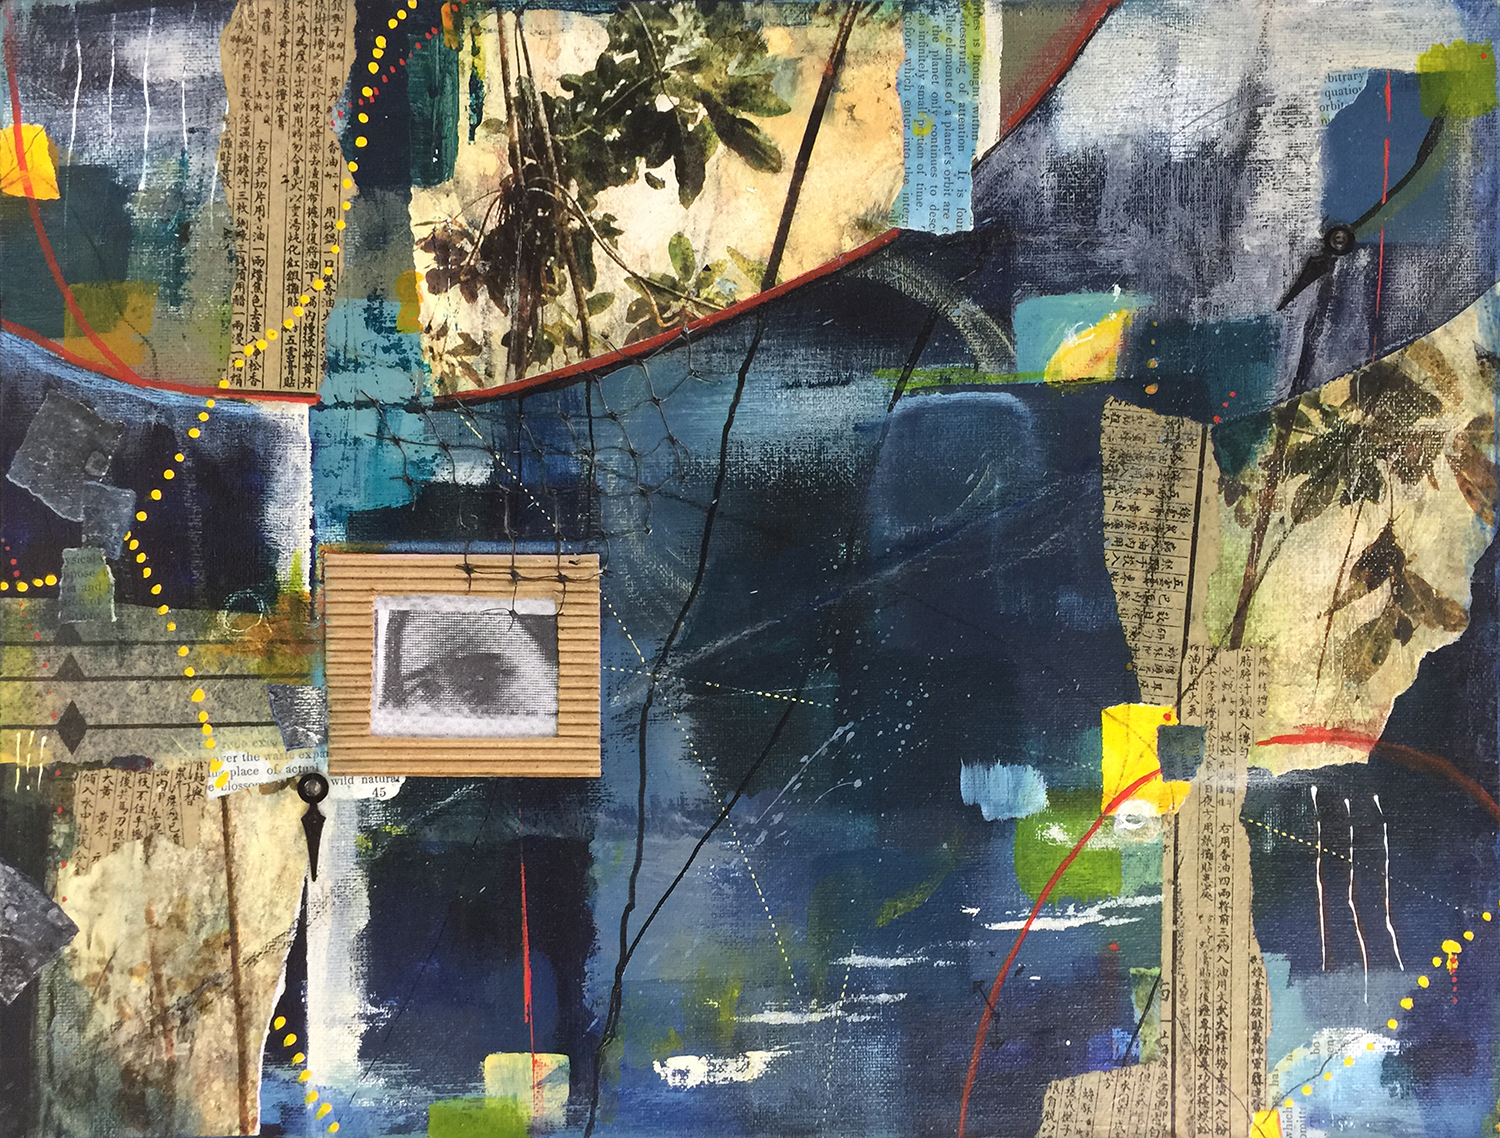 Robin Colodzin,  But most like chaos II , Acrylic, found paper, pencil, pastel, clock parts on canvas panel, 12x16